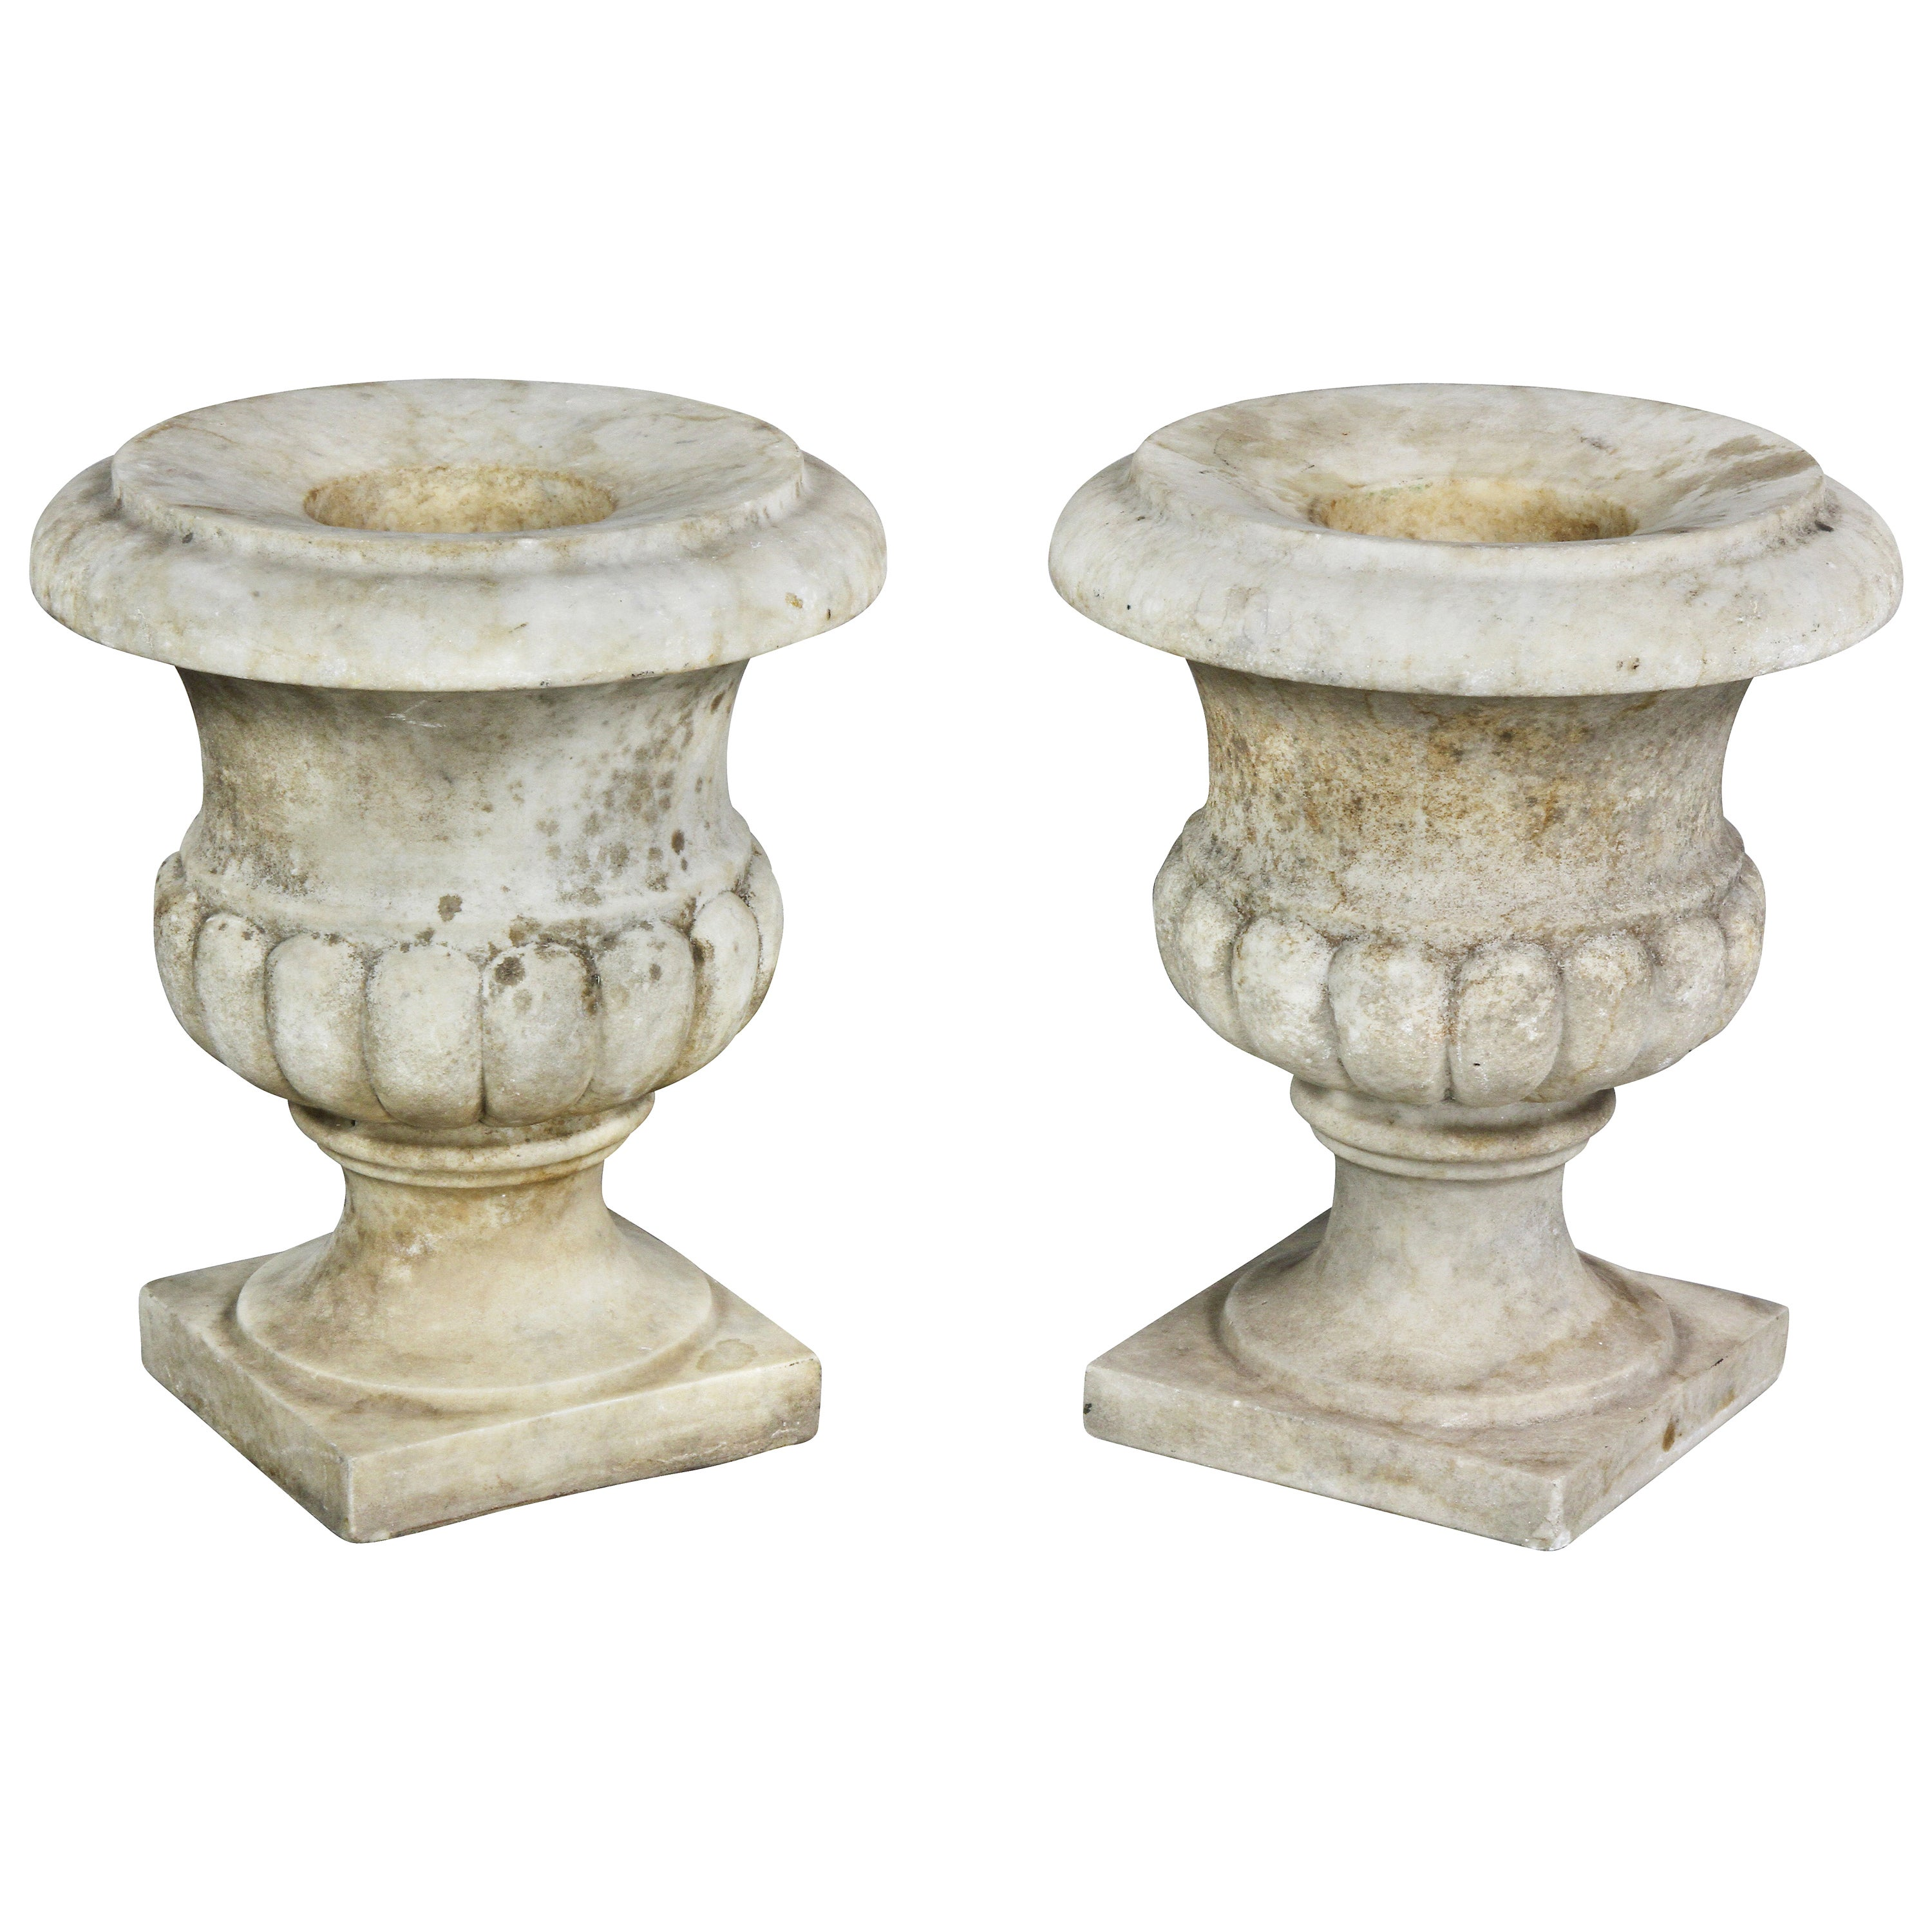 Asia Carrera Marble carrara marble vases and vessels - 40 for sale at 1stdibs